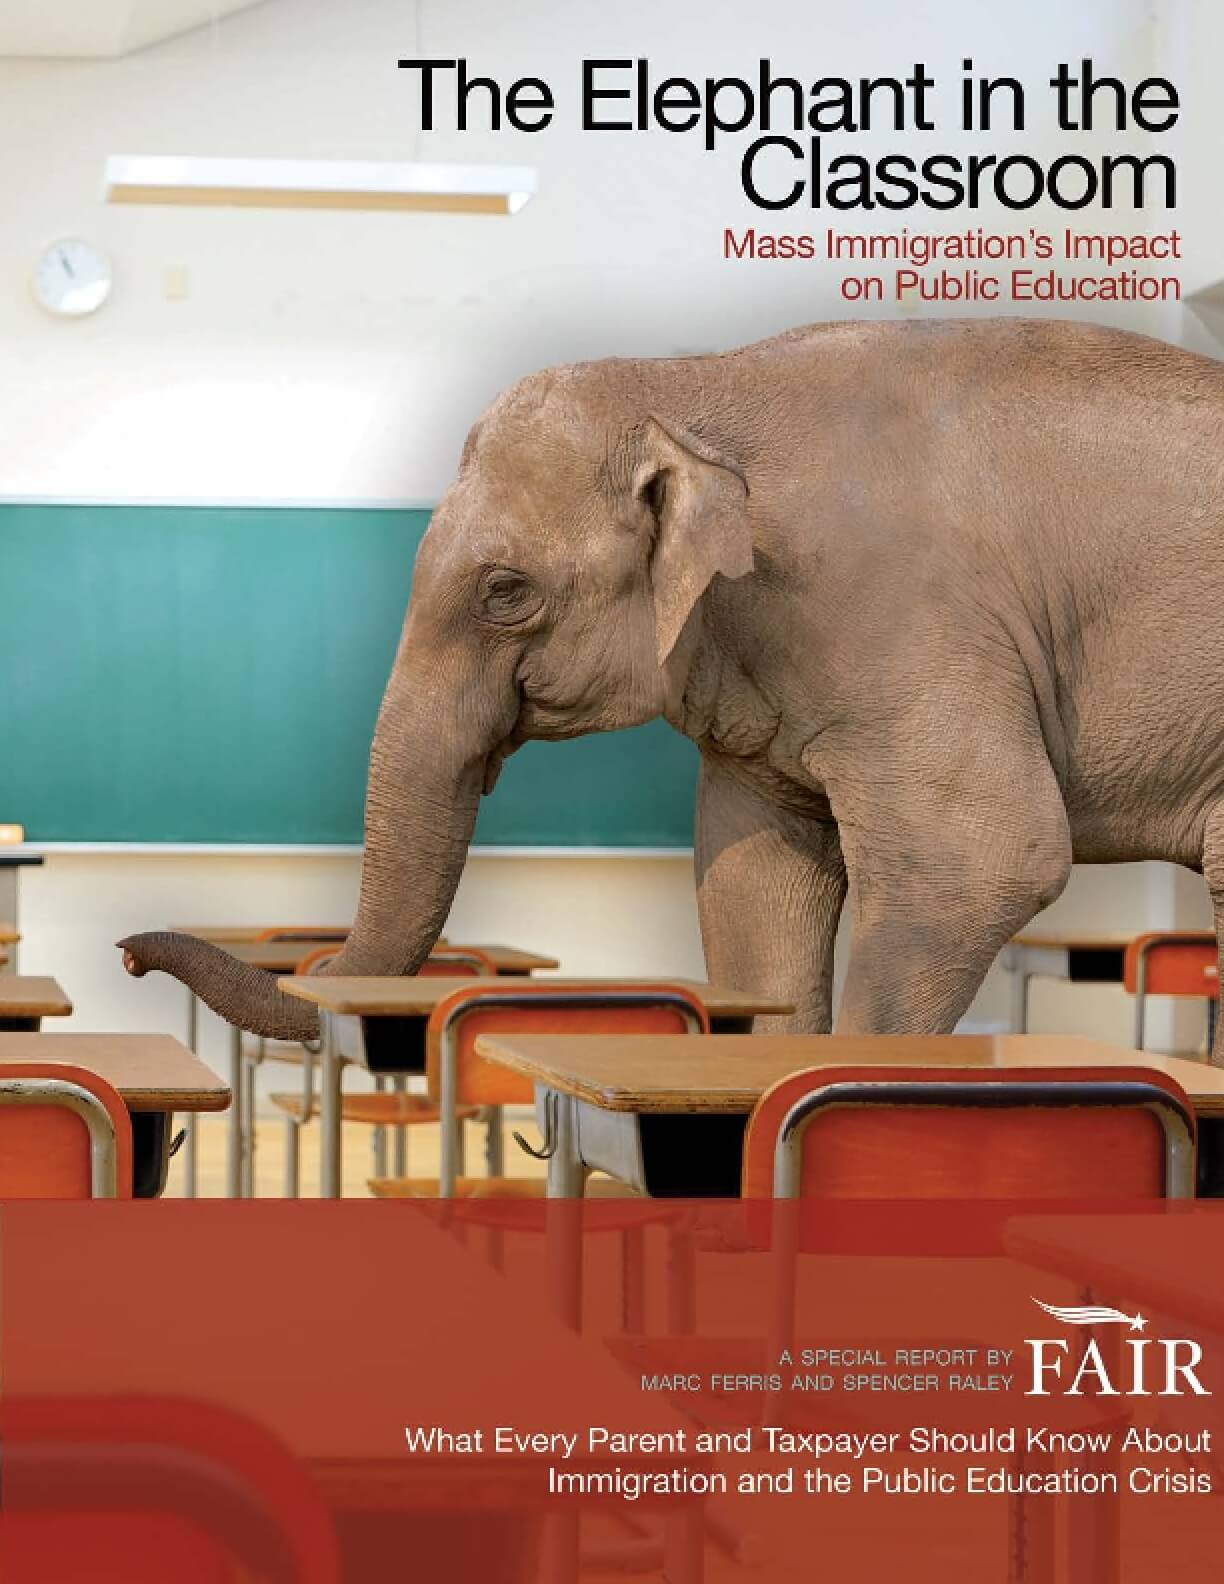 The Elephant in the Classroom: Mass Immigration's Impact on Public Education